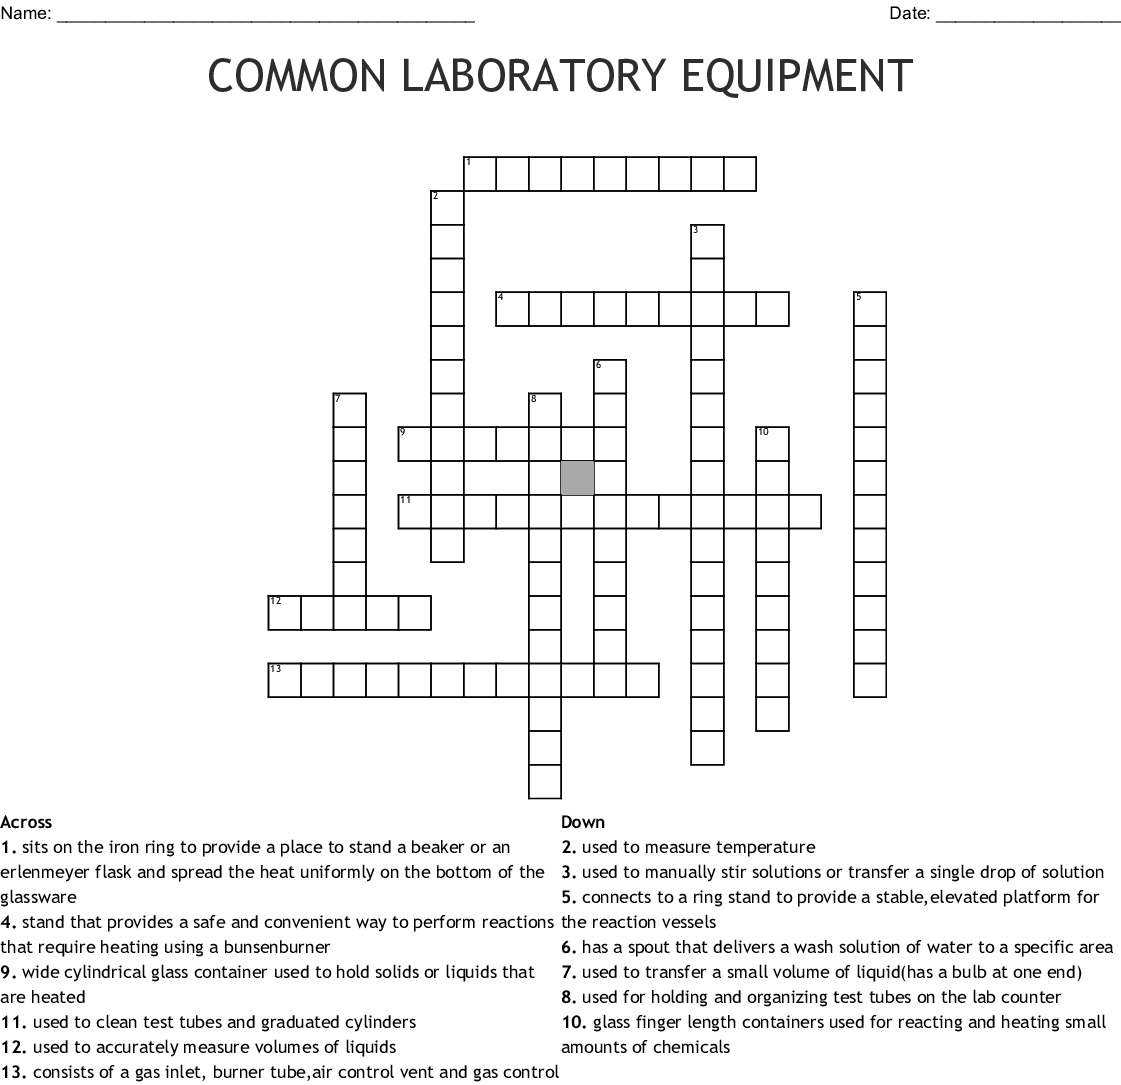 Common Laboratory Equipment Crossword